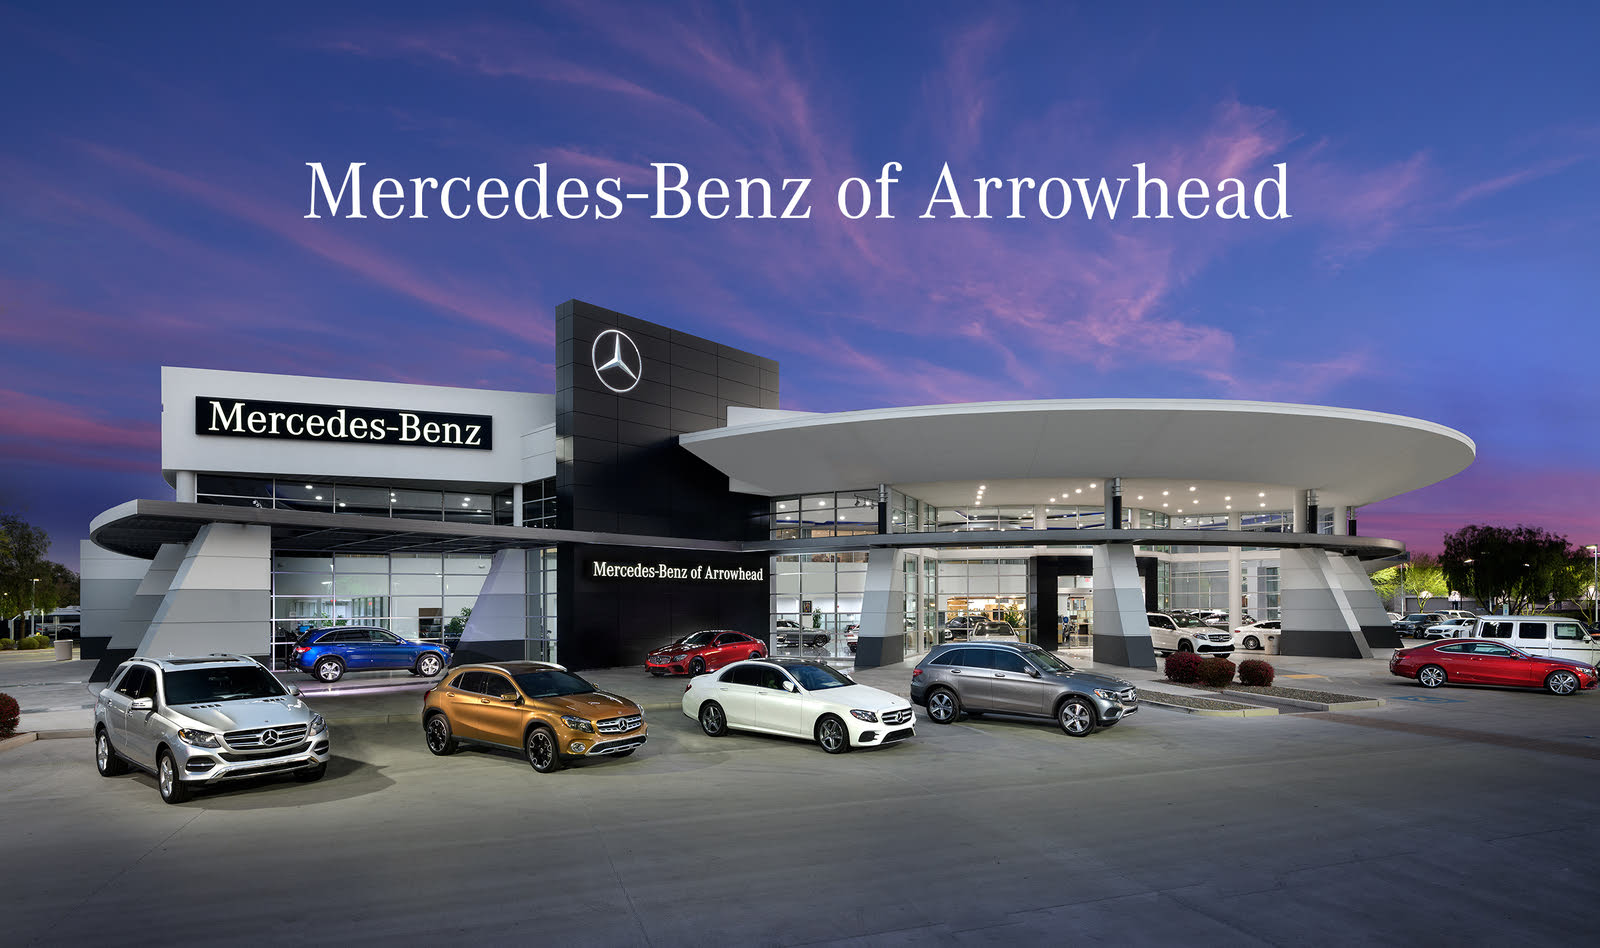 BMW Of Peoria >> Mercedes Benz of Arrowhead - Peoria, AZ: Read Consumer reviews, Browse Used and New Cars for Sale